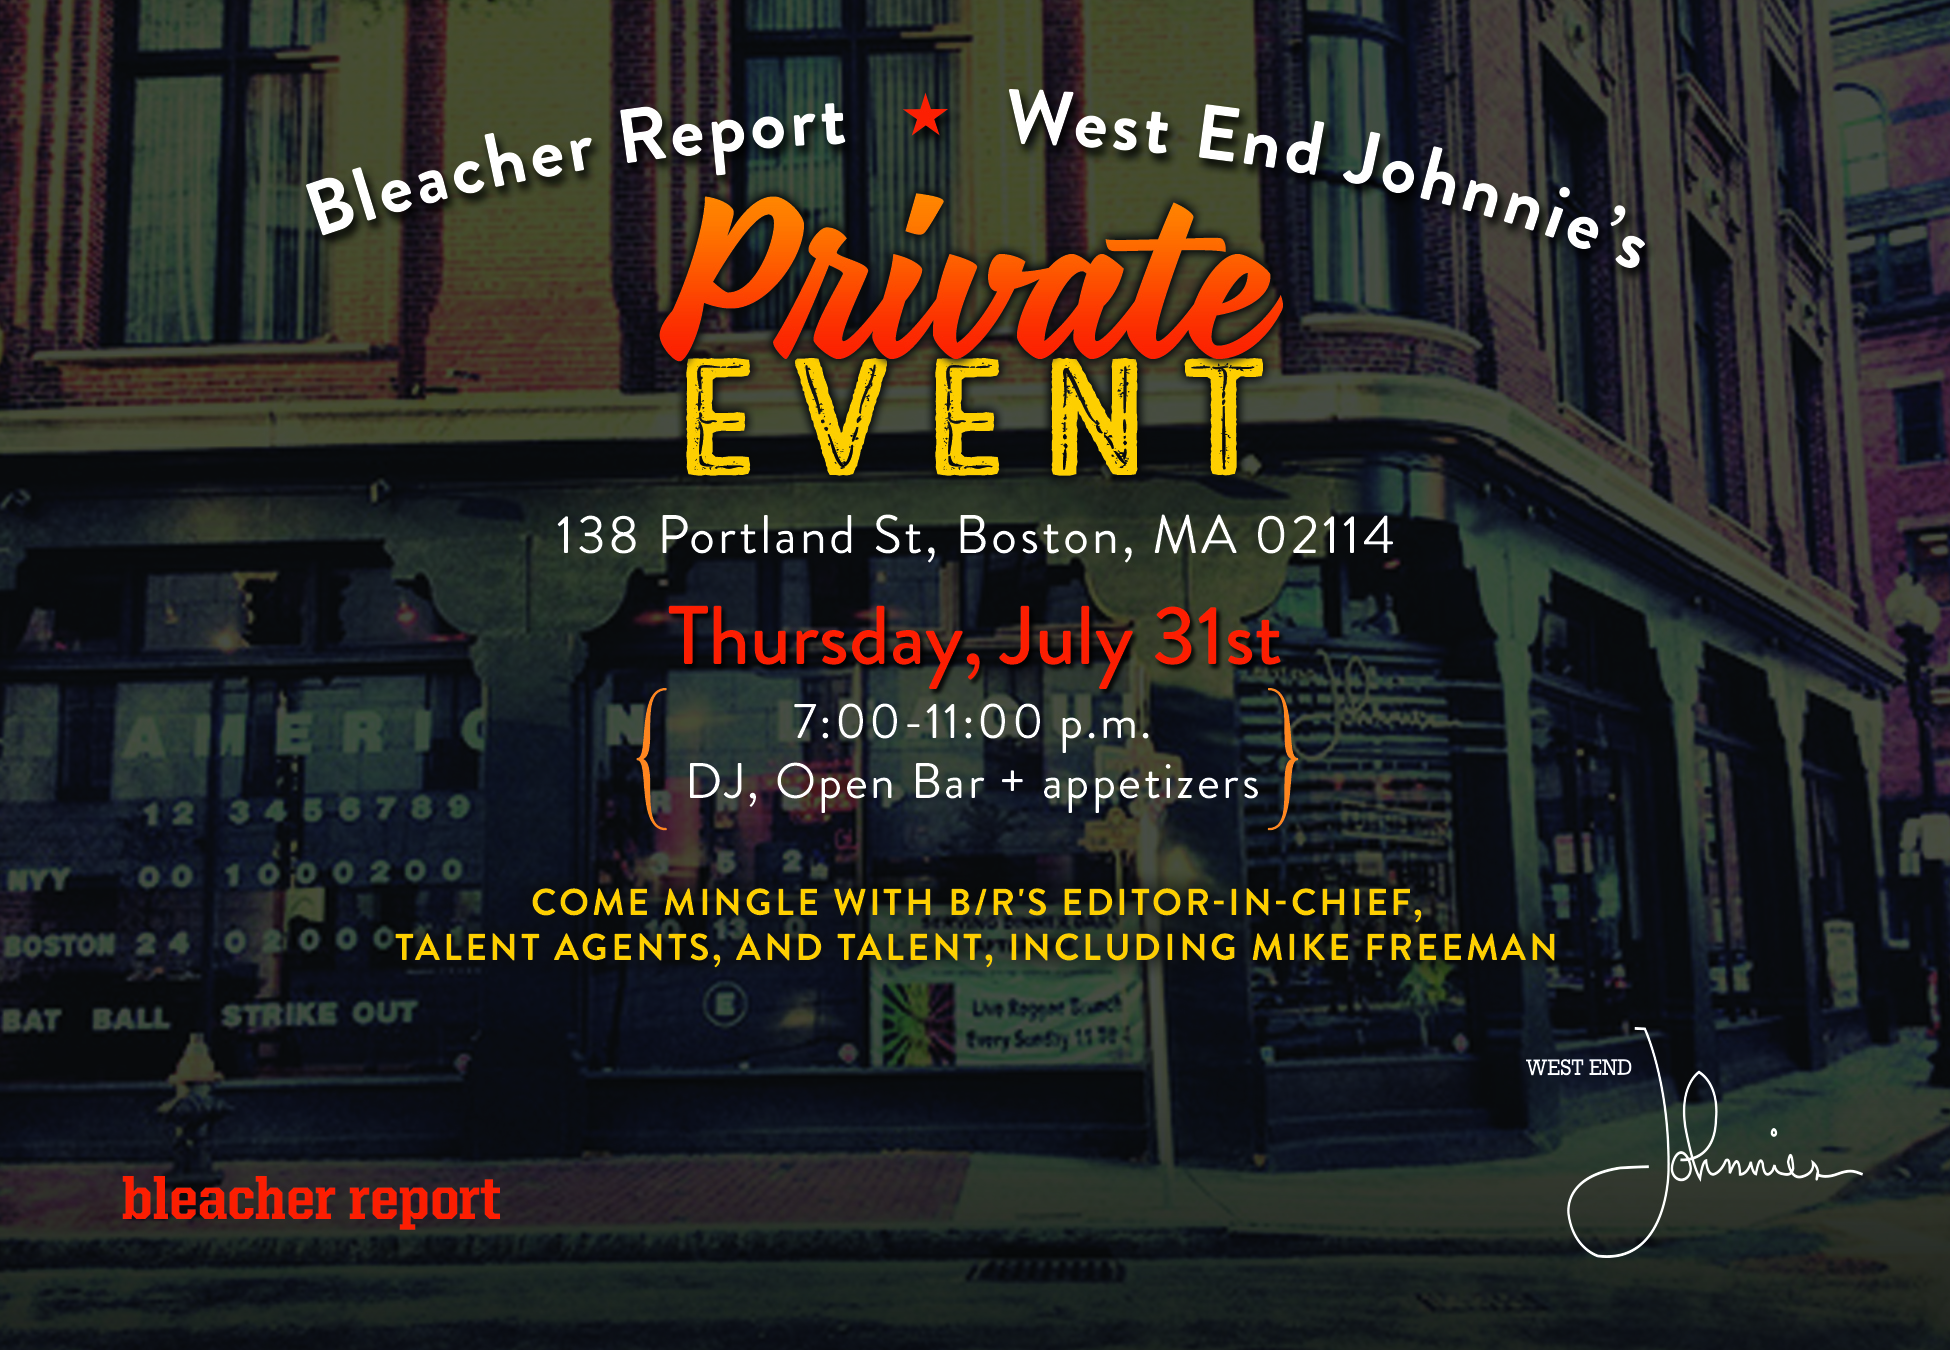 BR_WEJ_PrivateEvent_Flyer_0731.jpg